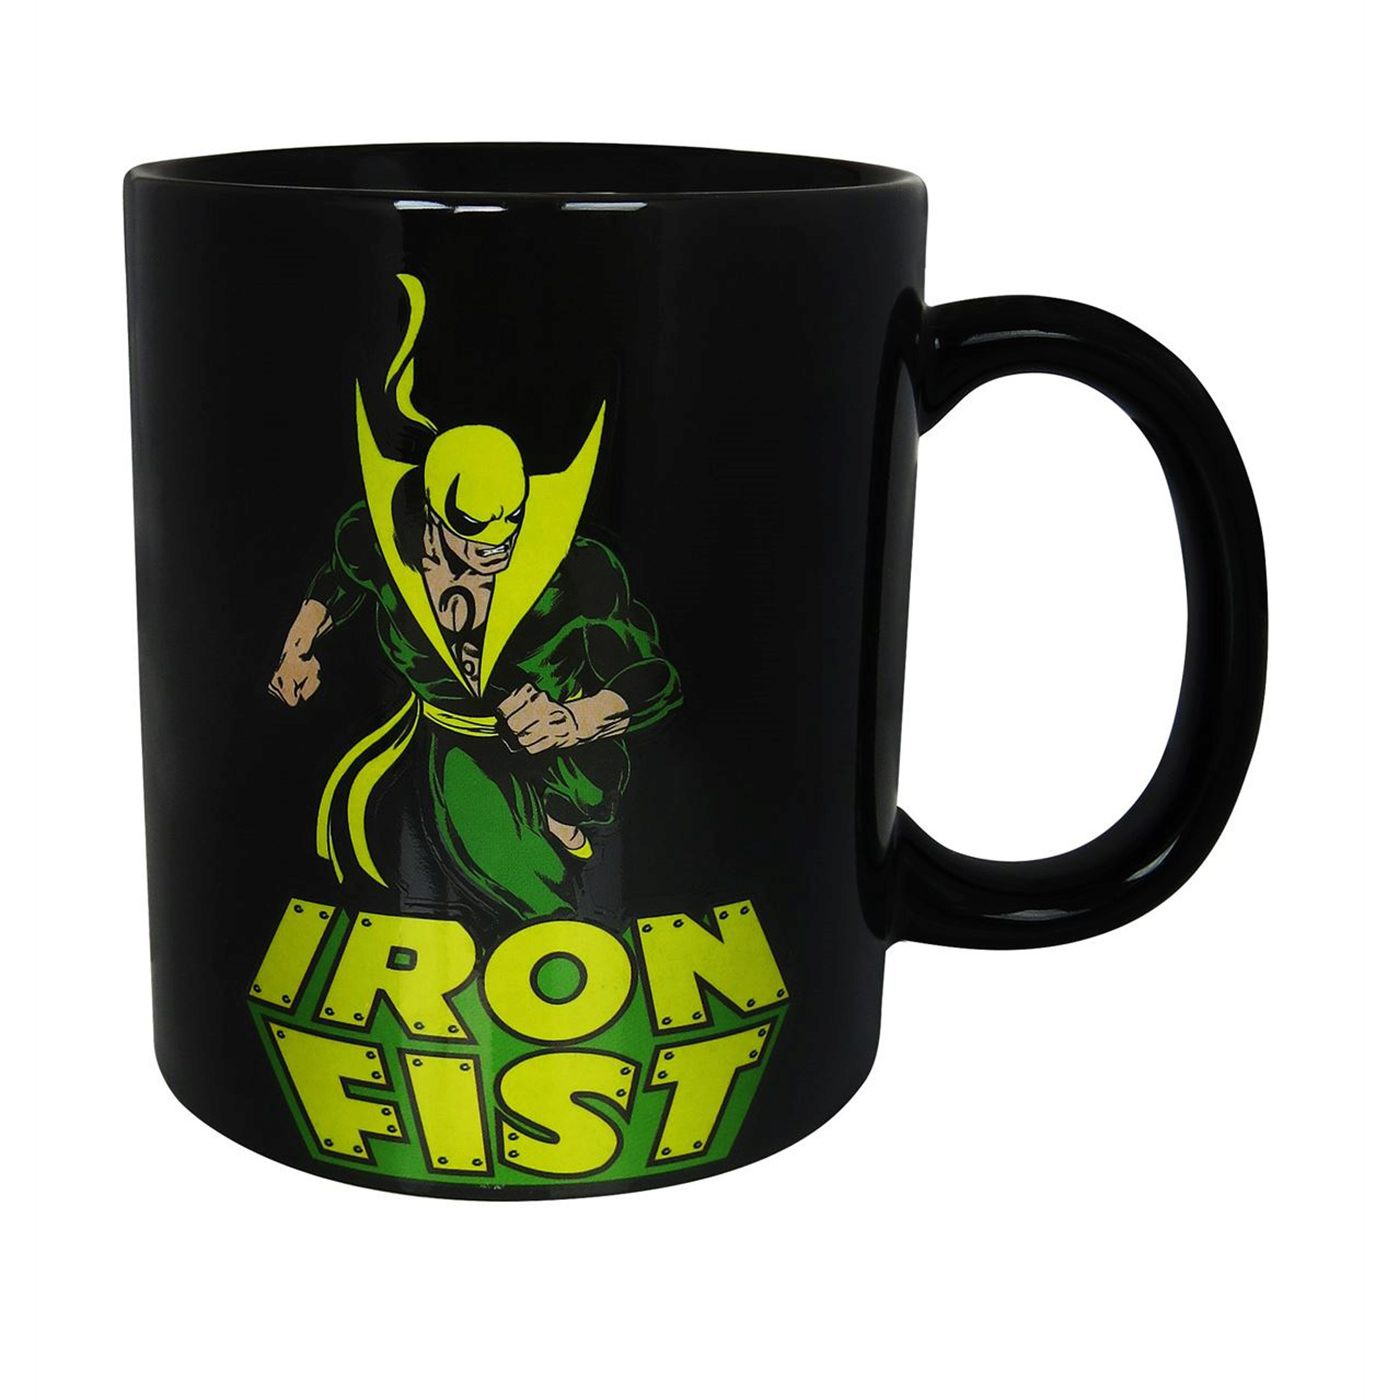 Iron Fist Image 11oz Mug